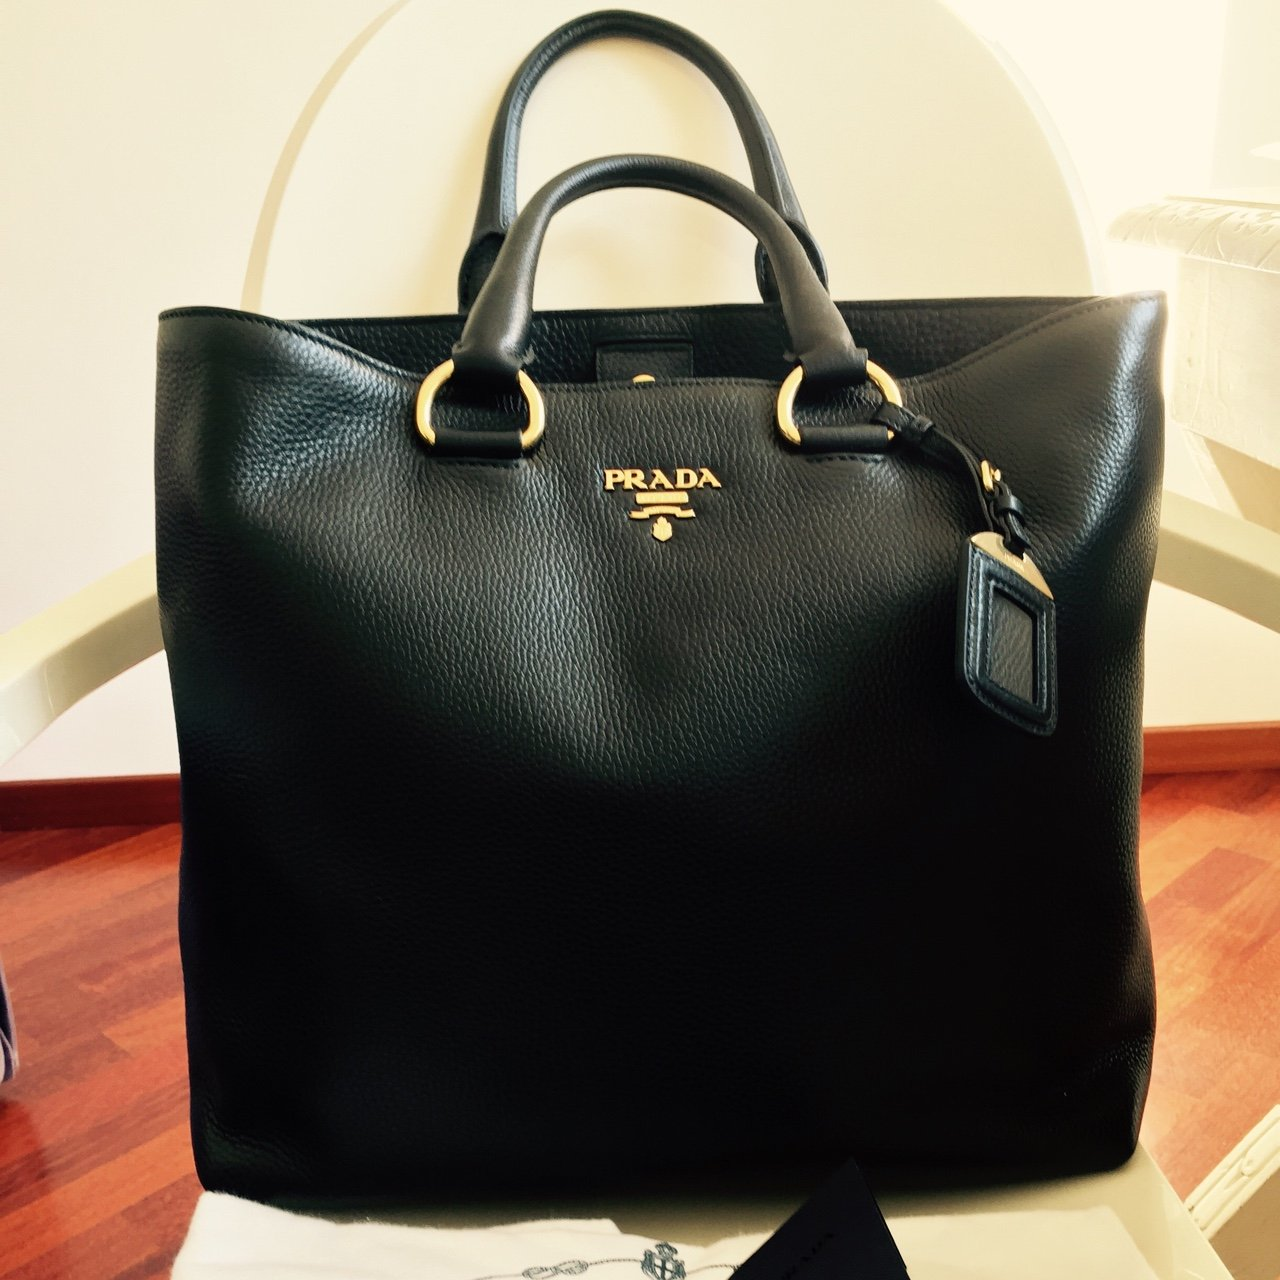 be5a19287a Shopping Bag Prada Black Leather New Borsa Tracolla In pelle - Depop